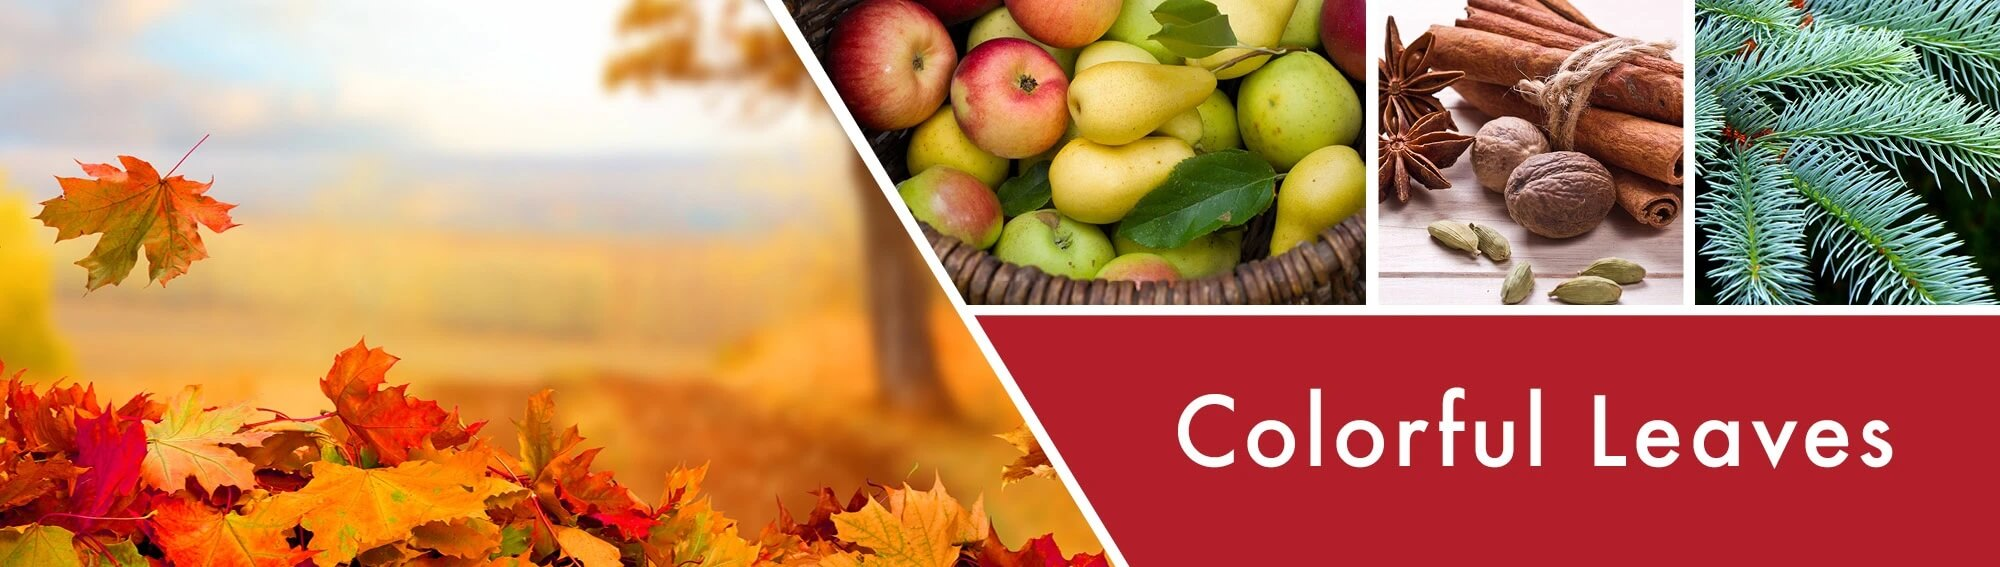 Colorful-Leaves-Banner